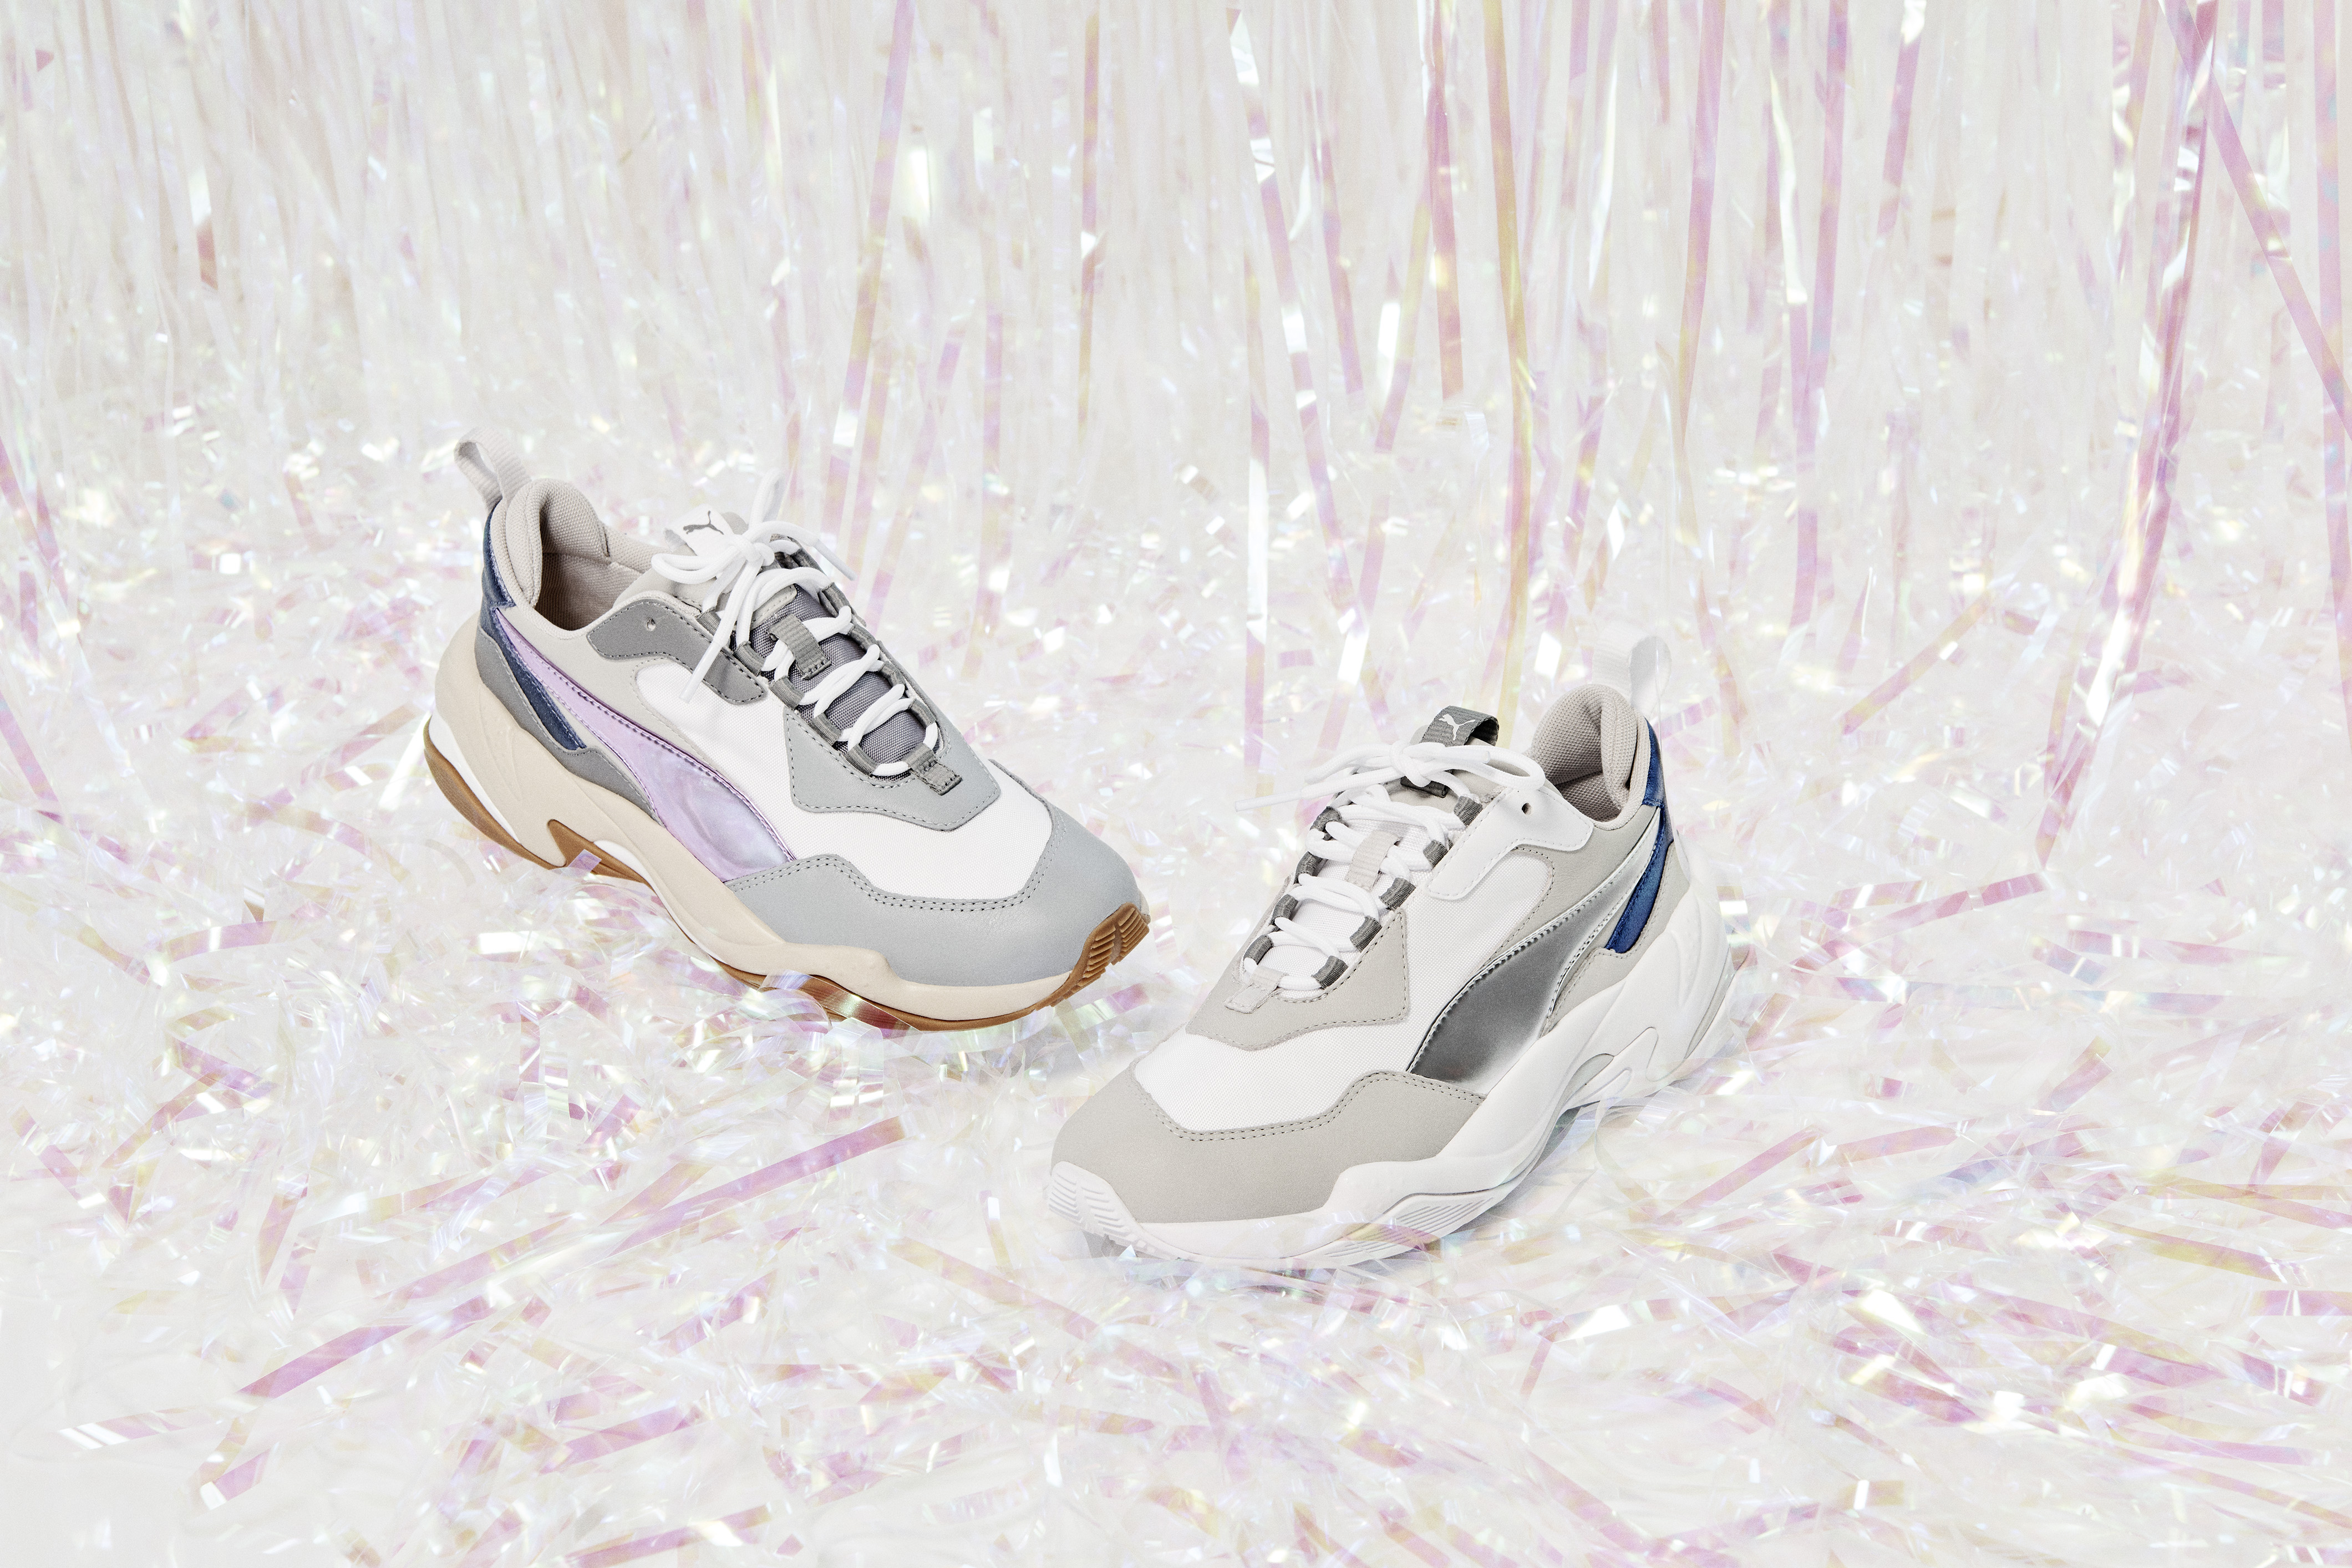 puma thunder electric femme paris